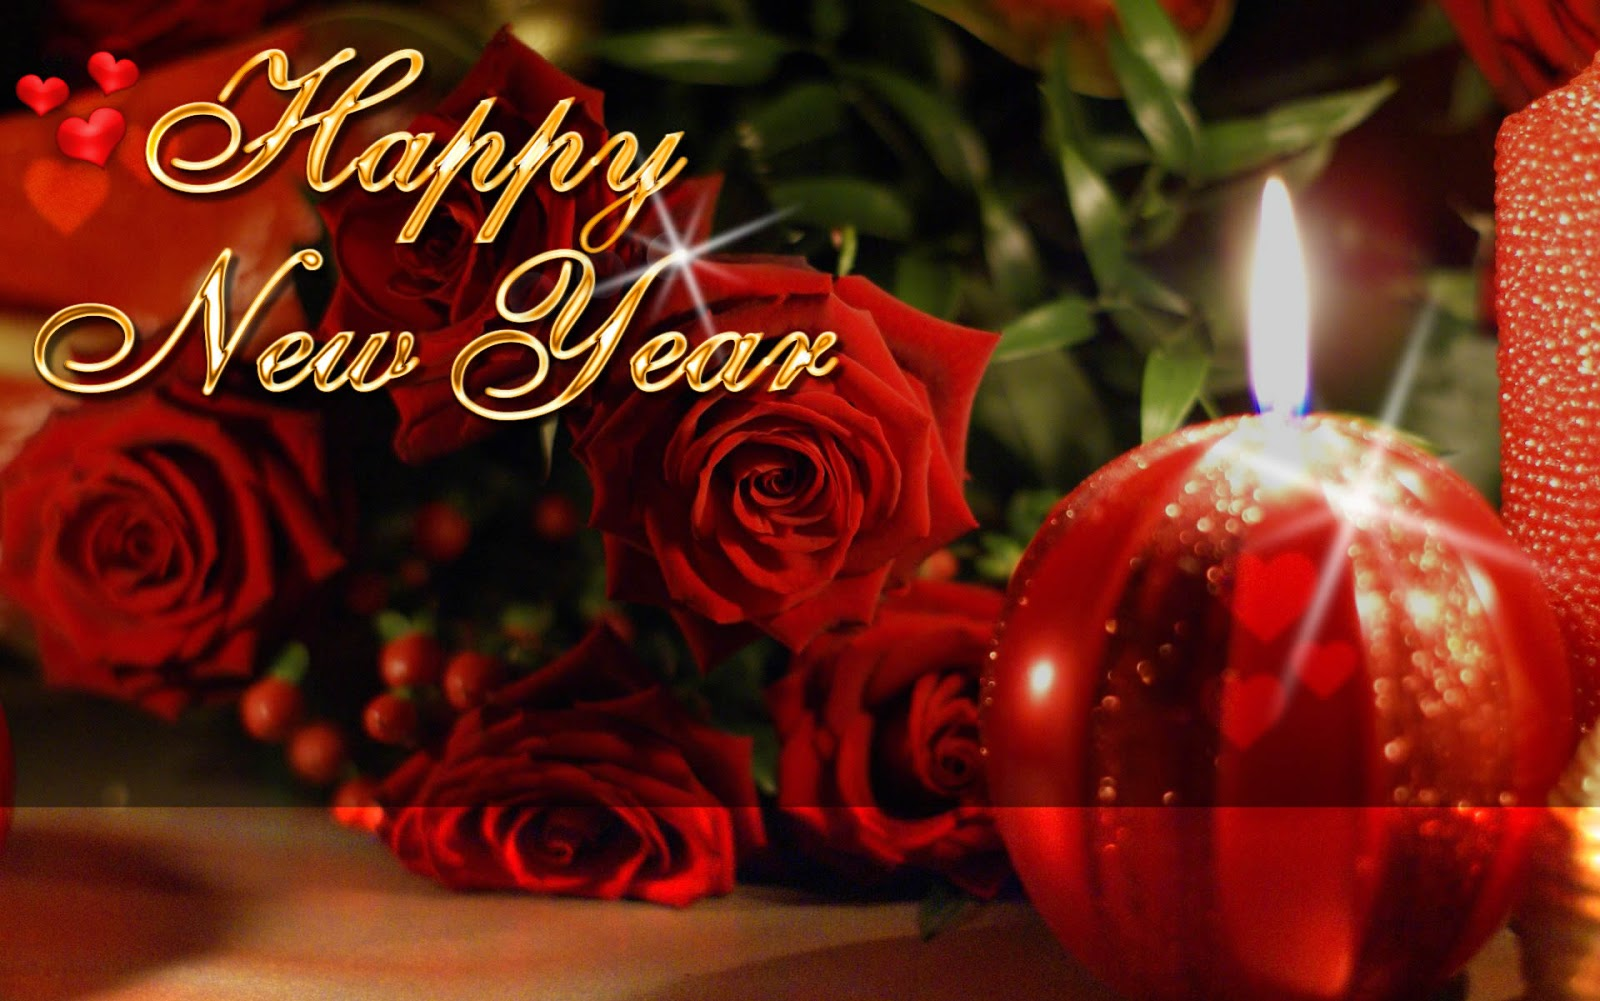 Happy New Year 2069 Wallpaper